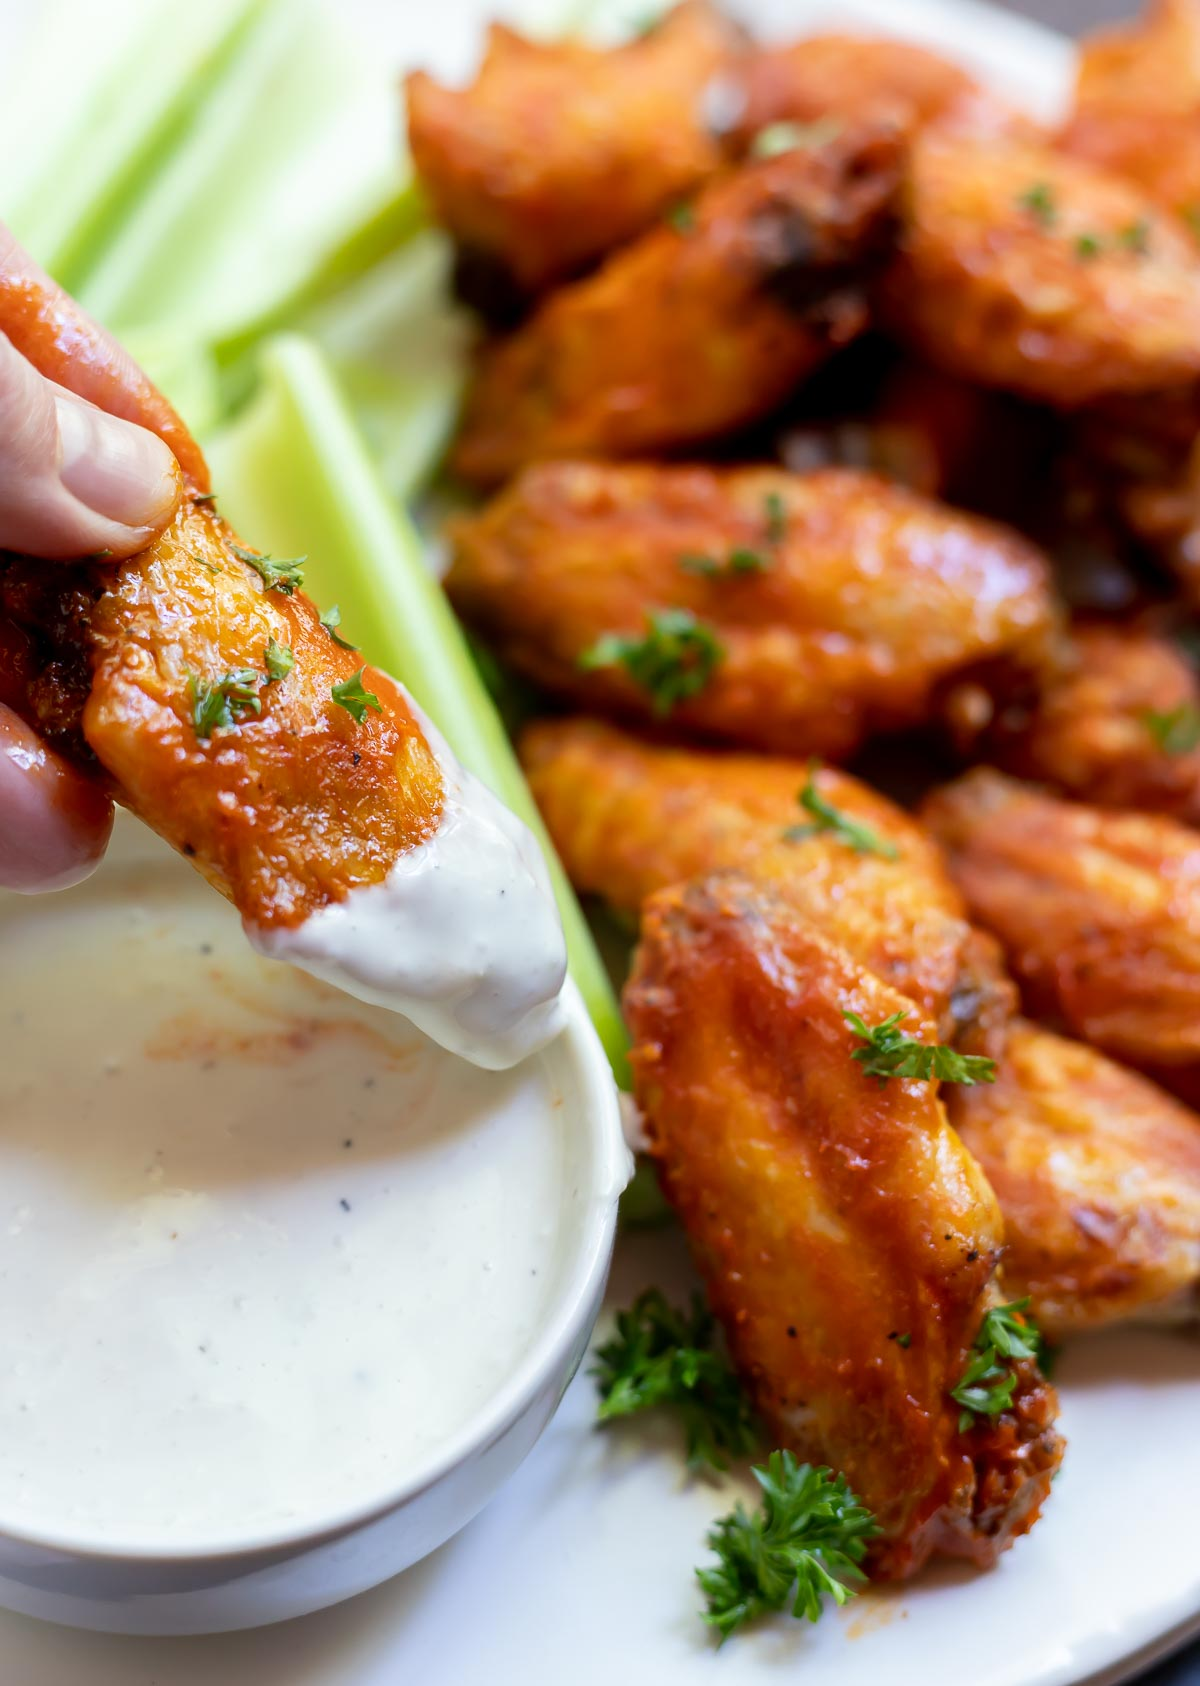 buffalo wing being dipped into blue cheese dip